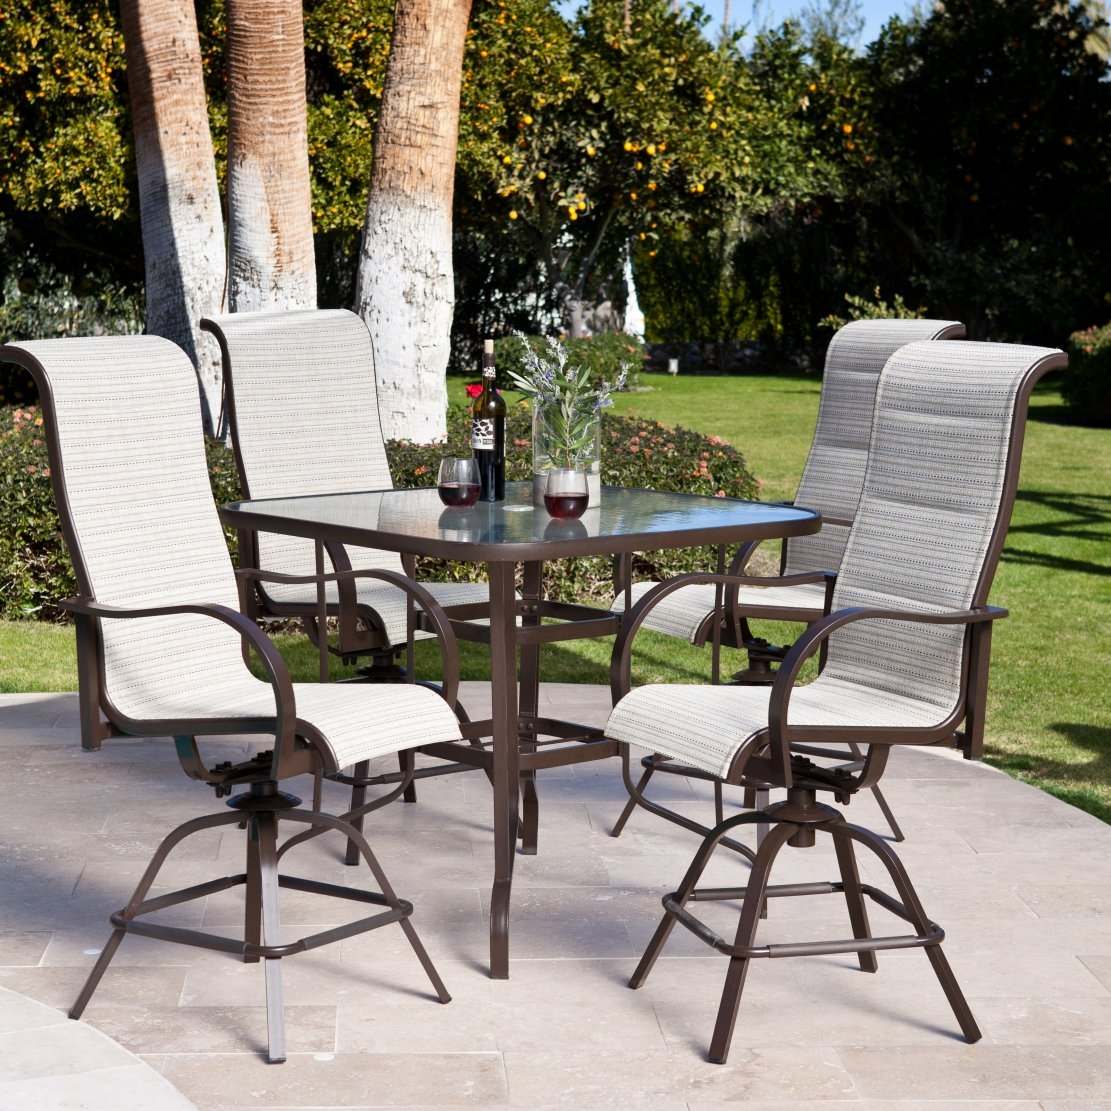 Outdoor Chair Set Creativeworks Home Decor Patio Furniture Sets